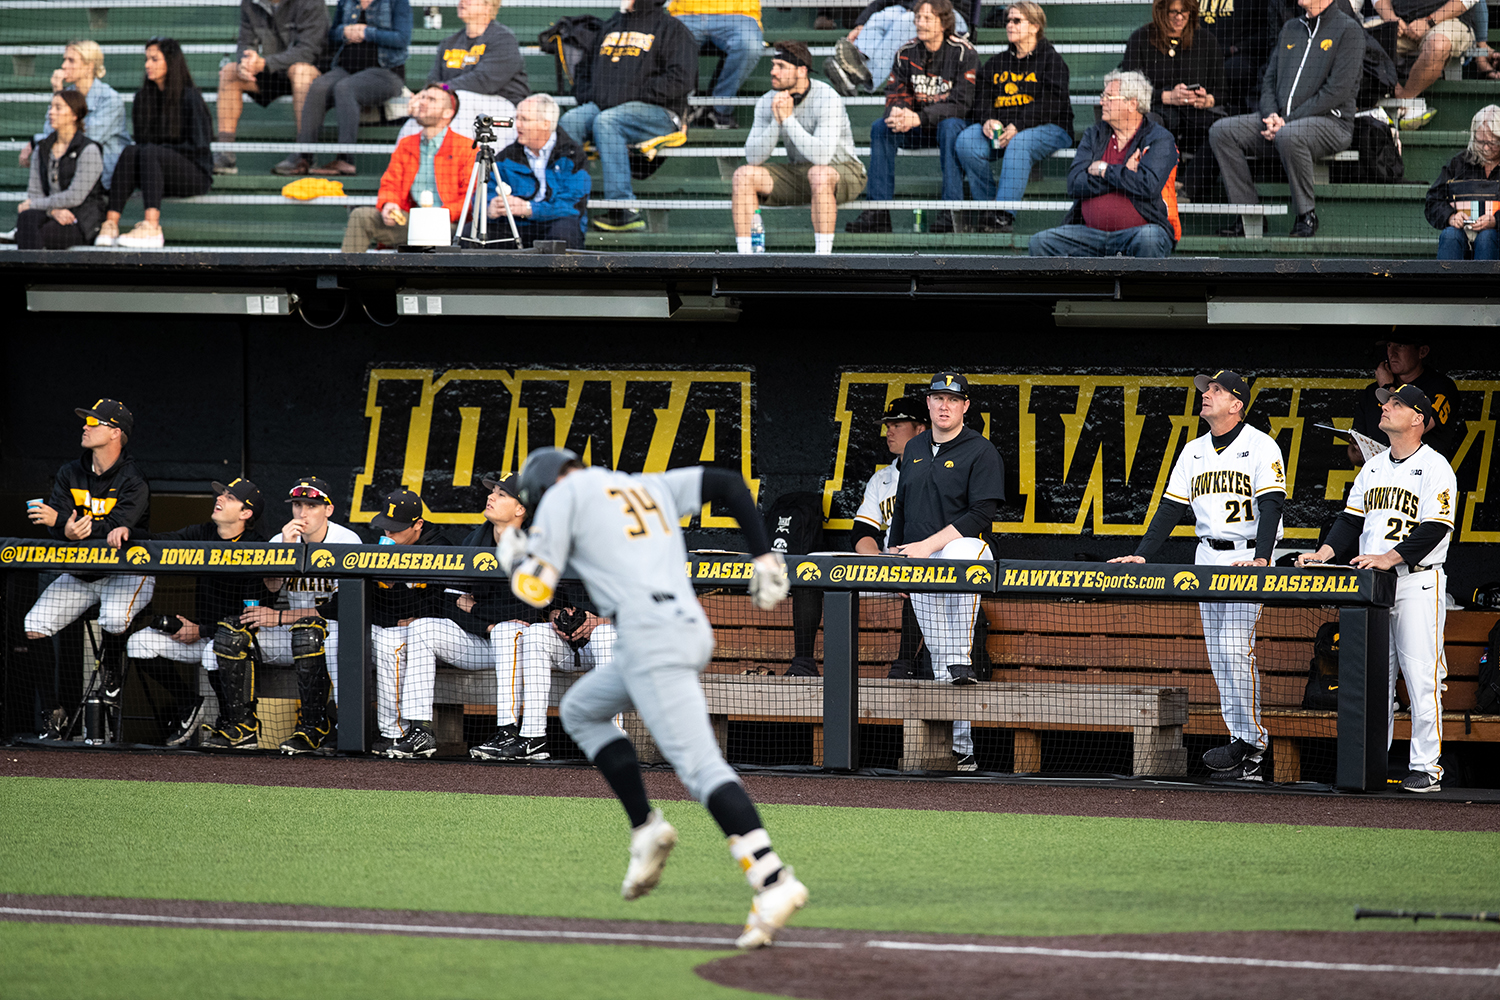 The+Iowa+baseball+watches+a+hit+into+the+outfield+during+the+baseball+game+against+Milwaukee+at+Duane+Banks+Field+on+Tuesday%2C+April+23%2C+2019.+The+Hawkeyes+defeated+the+Panthers+5-4.